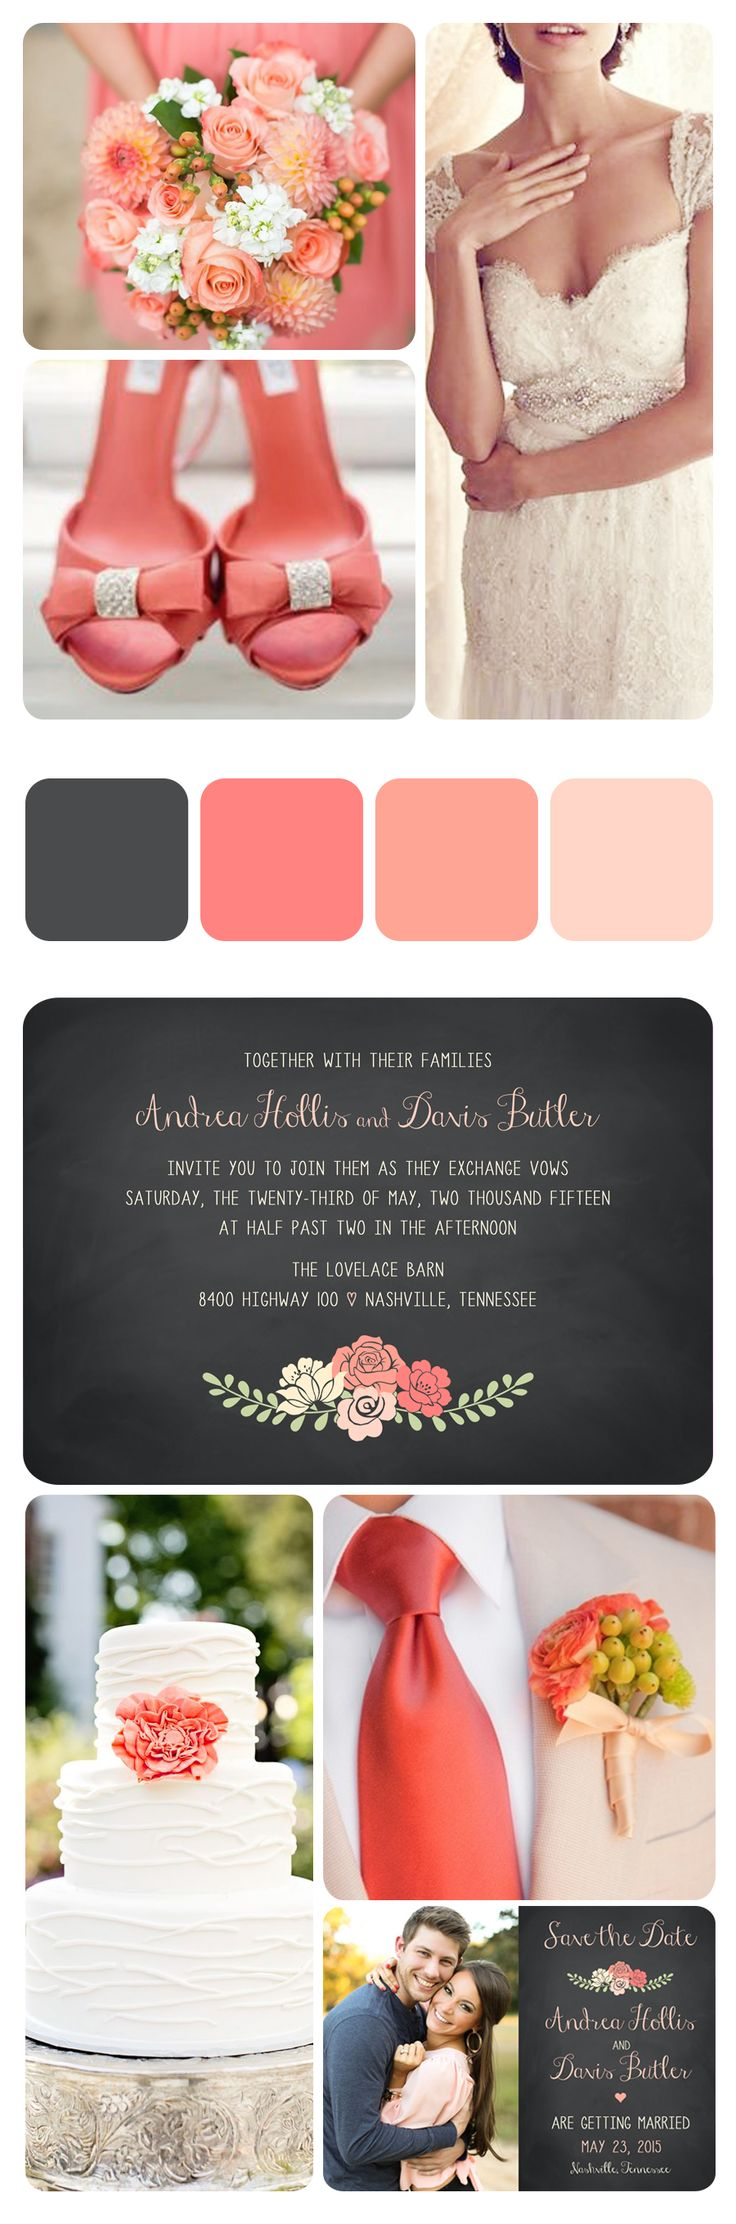 Vintage Coral & Lace Wedding . Chalkboard Invitations . Save the Dates. White Wedding Cake. Printable Designs. Coral Bouquet. http://vintagesweetdesign.etsy.com